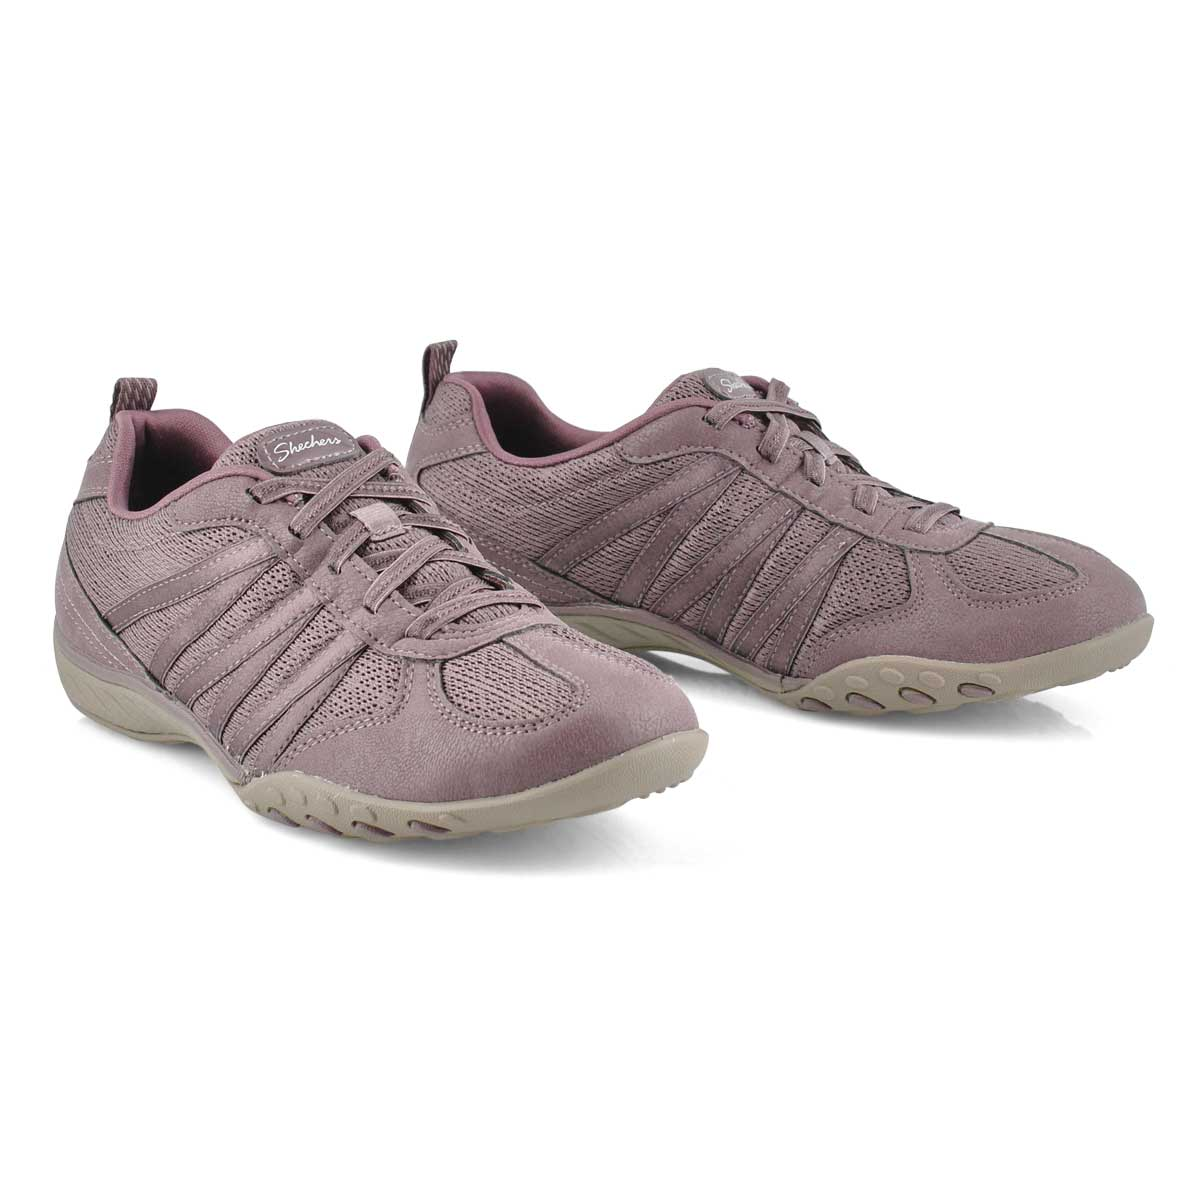 Lds Breathe-Easy mauve slip on snkr